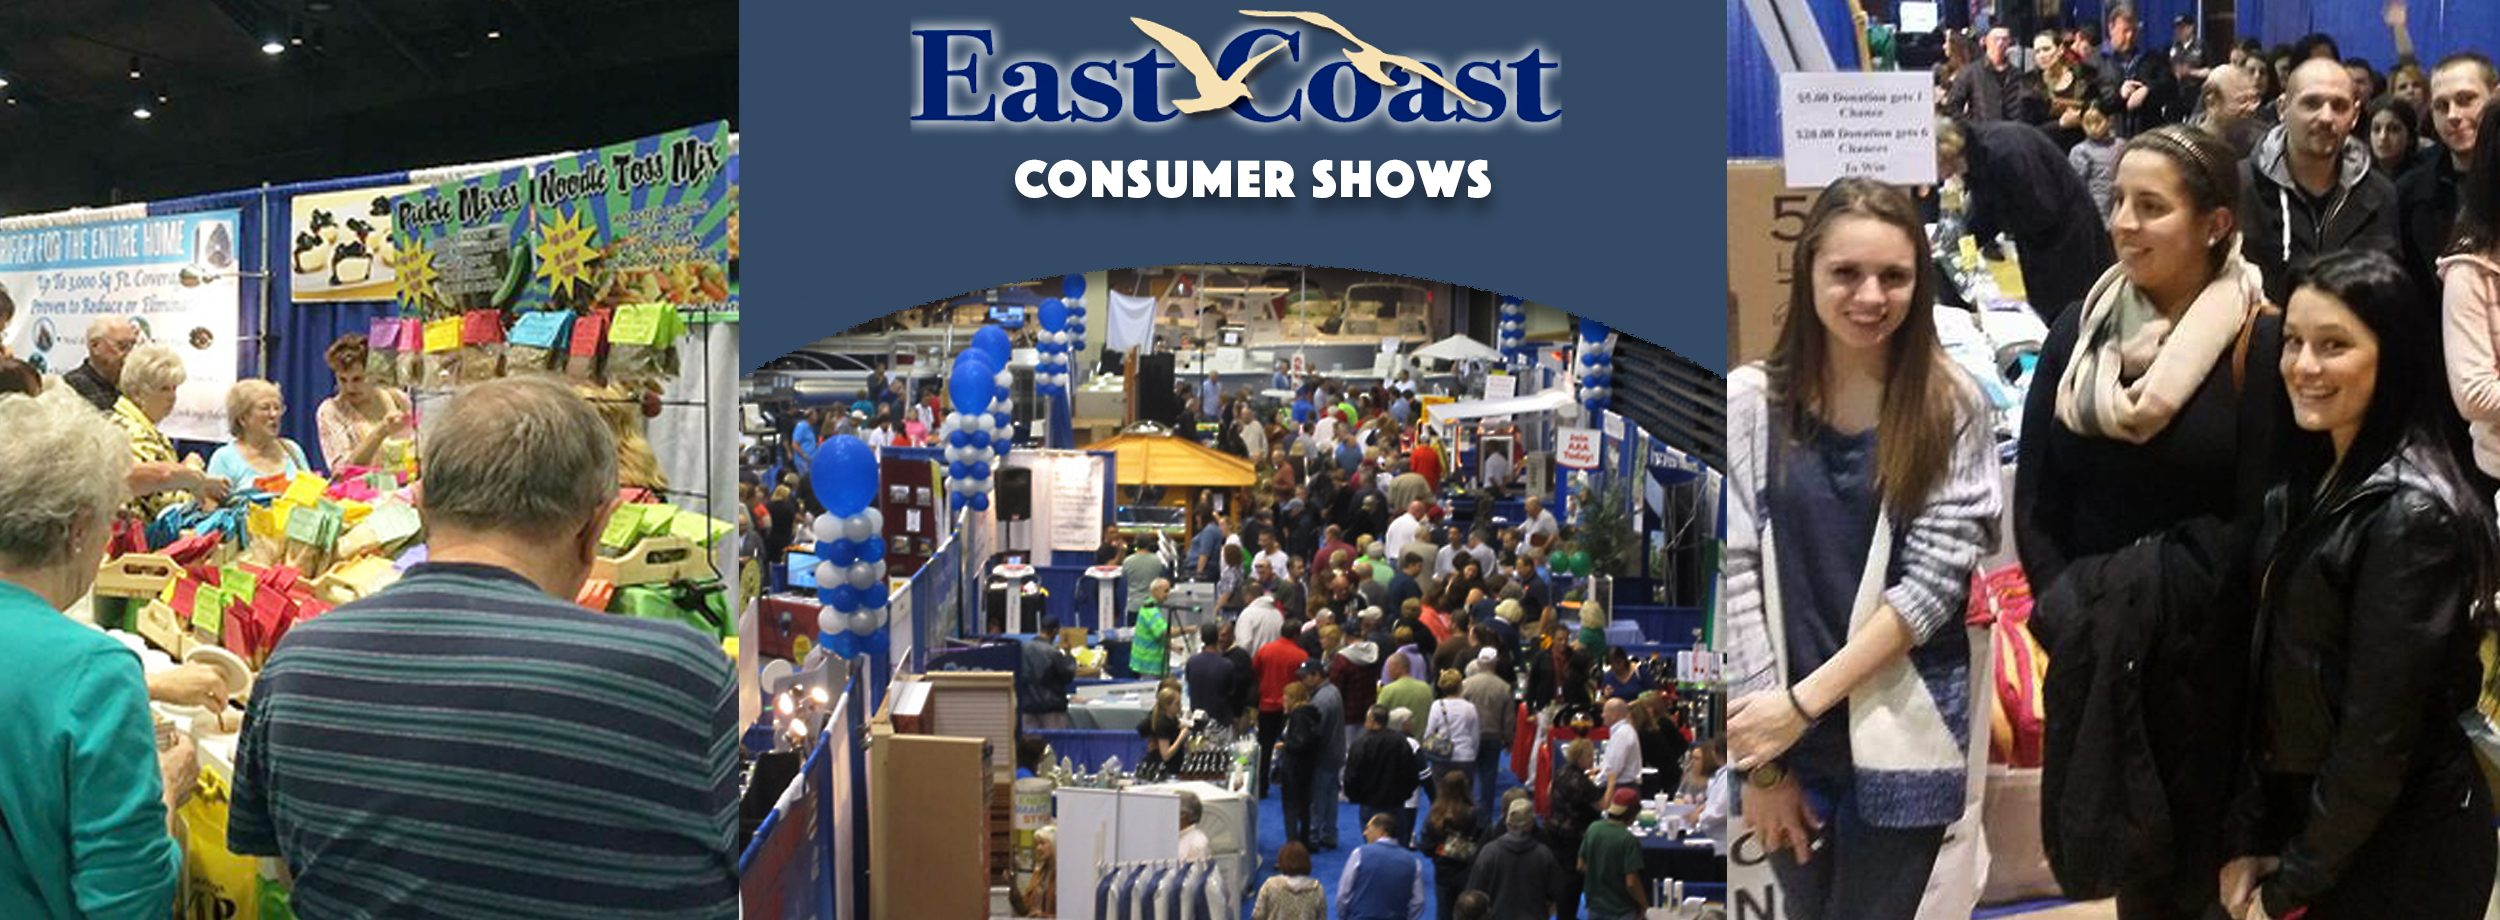 Events by East Coast Consumer Shows